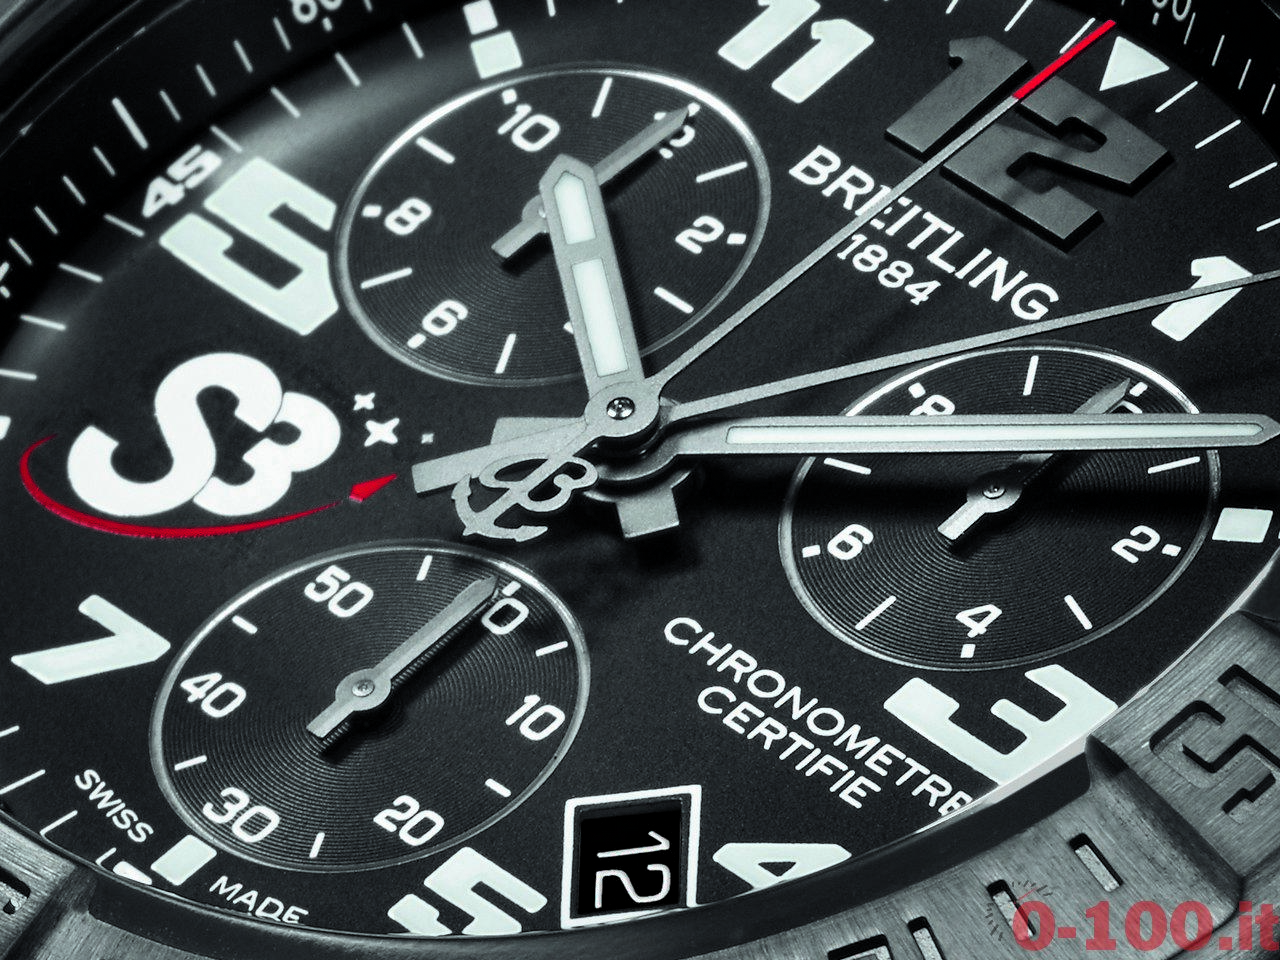 breitling-chronograph-s3-swiss-space-systems-0-100-2